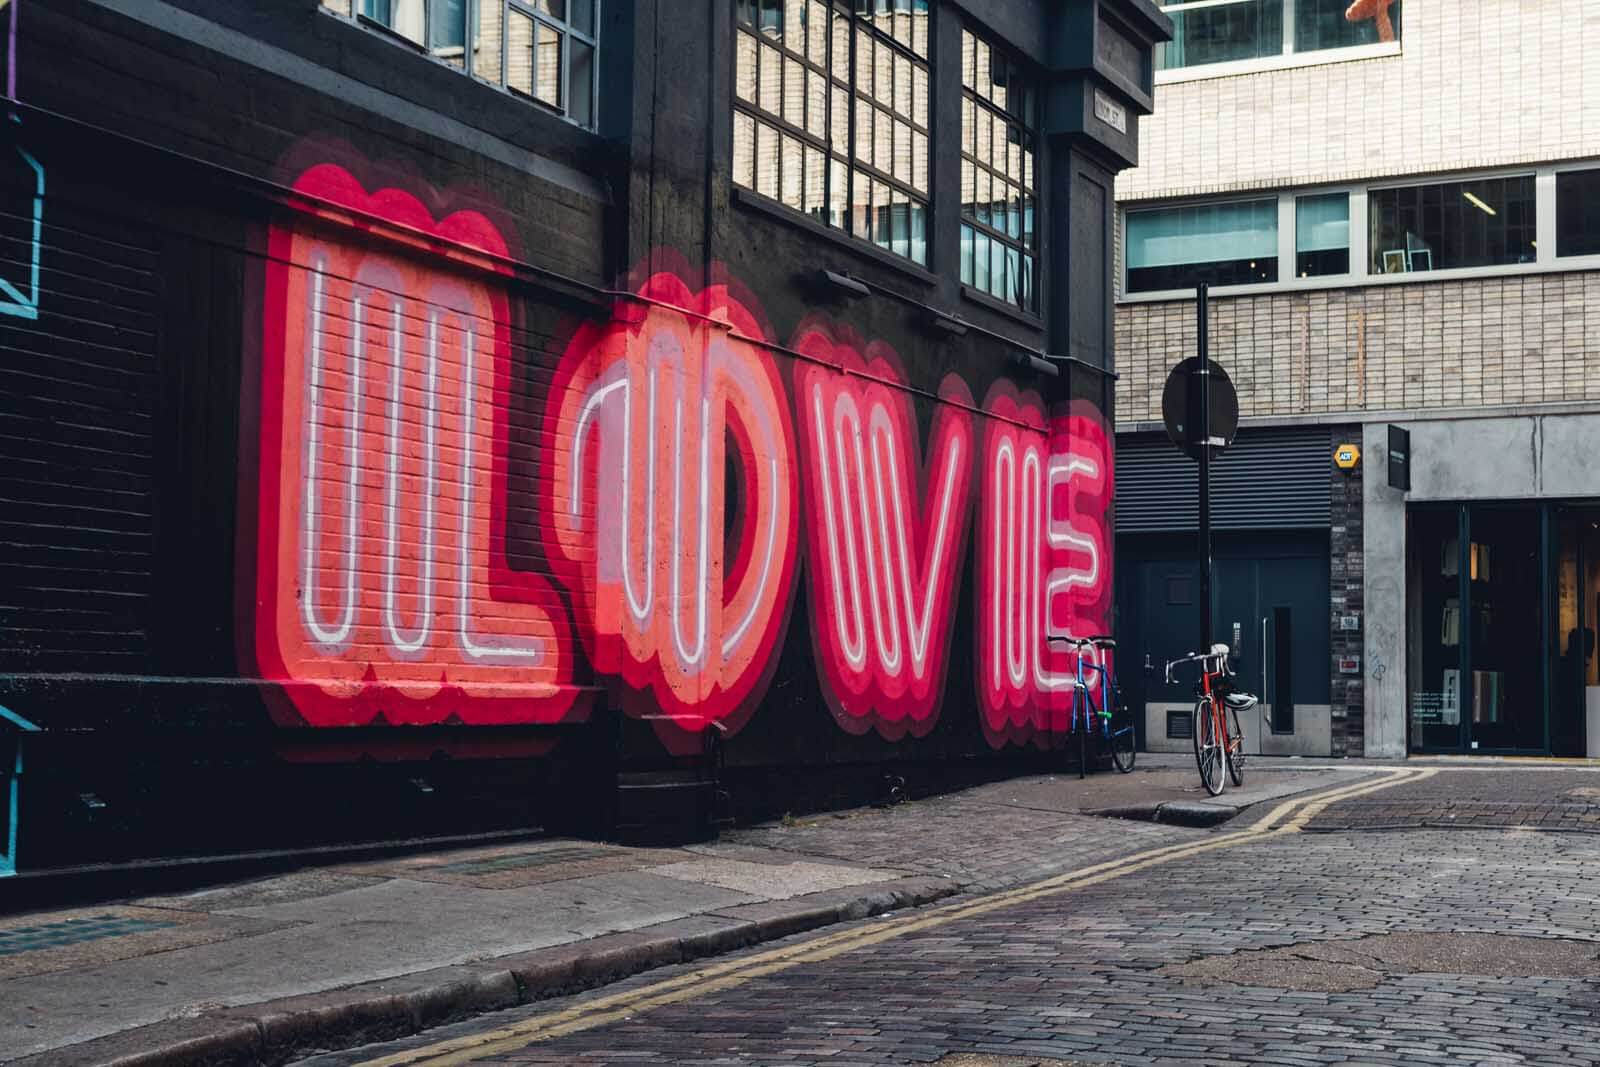 Love Wall in East End London